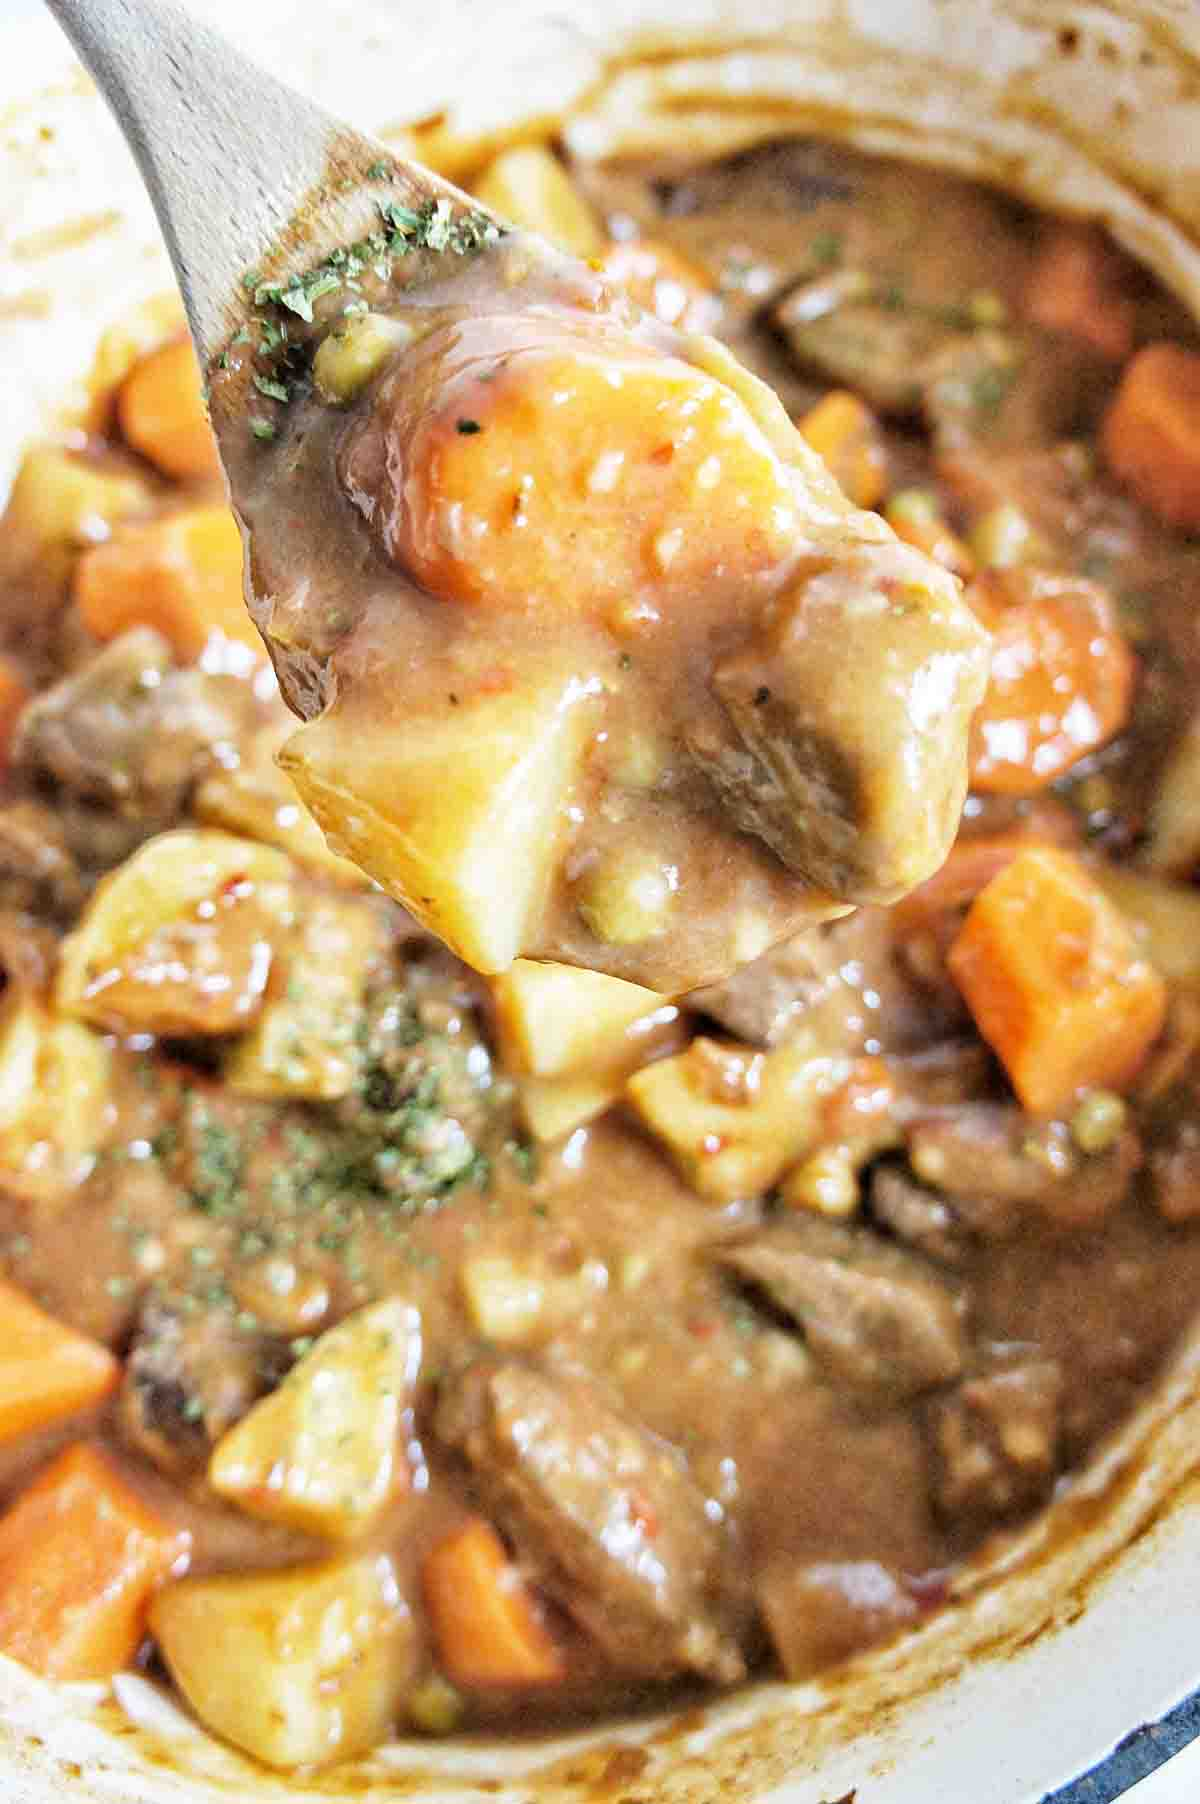 Chunky Beef Stew with spoon showing thick ingredients